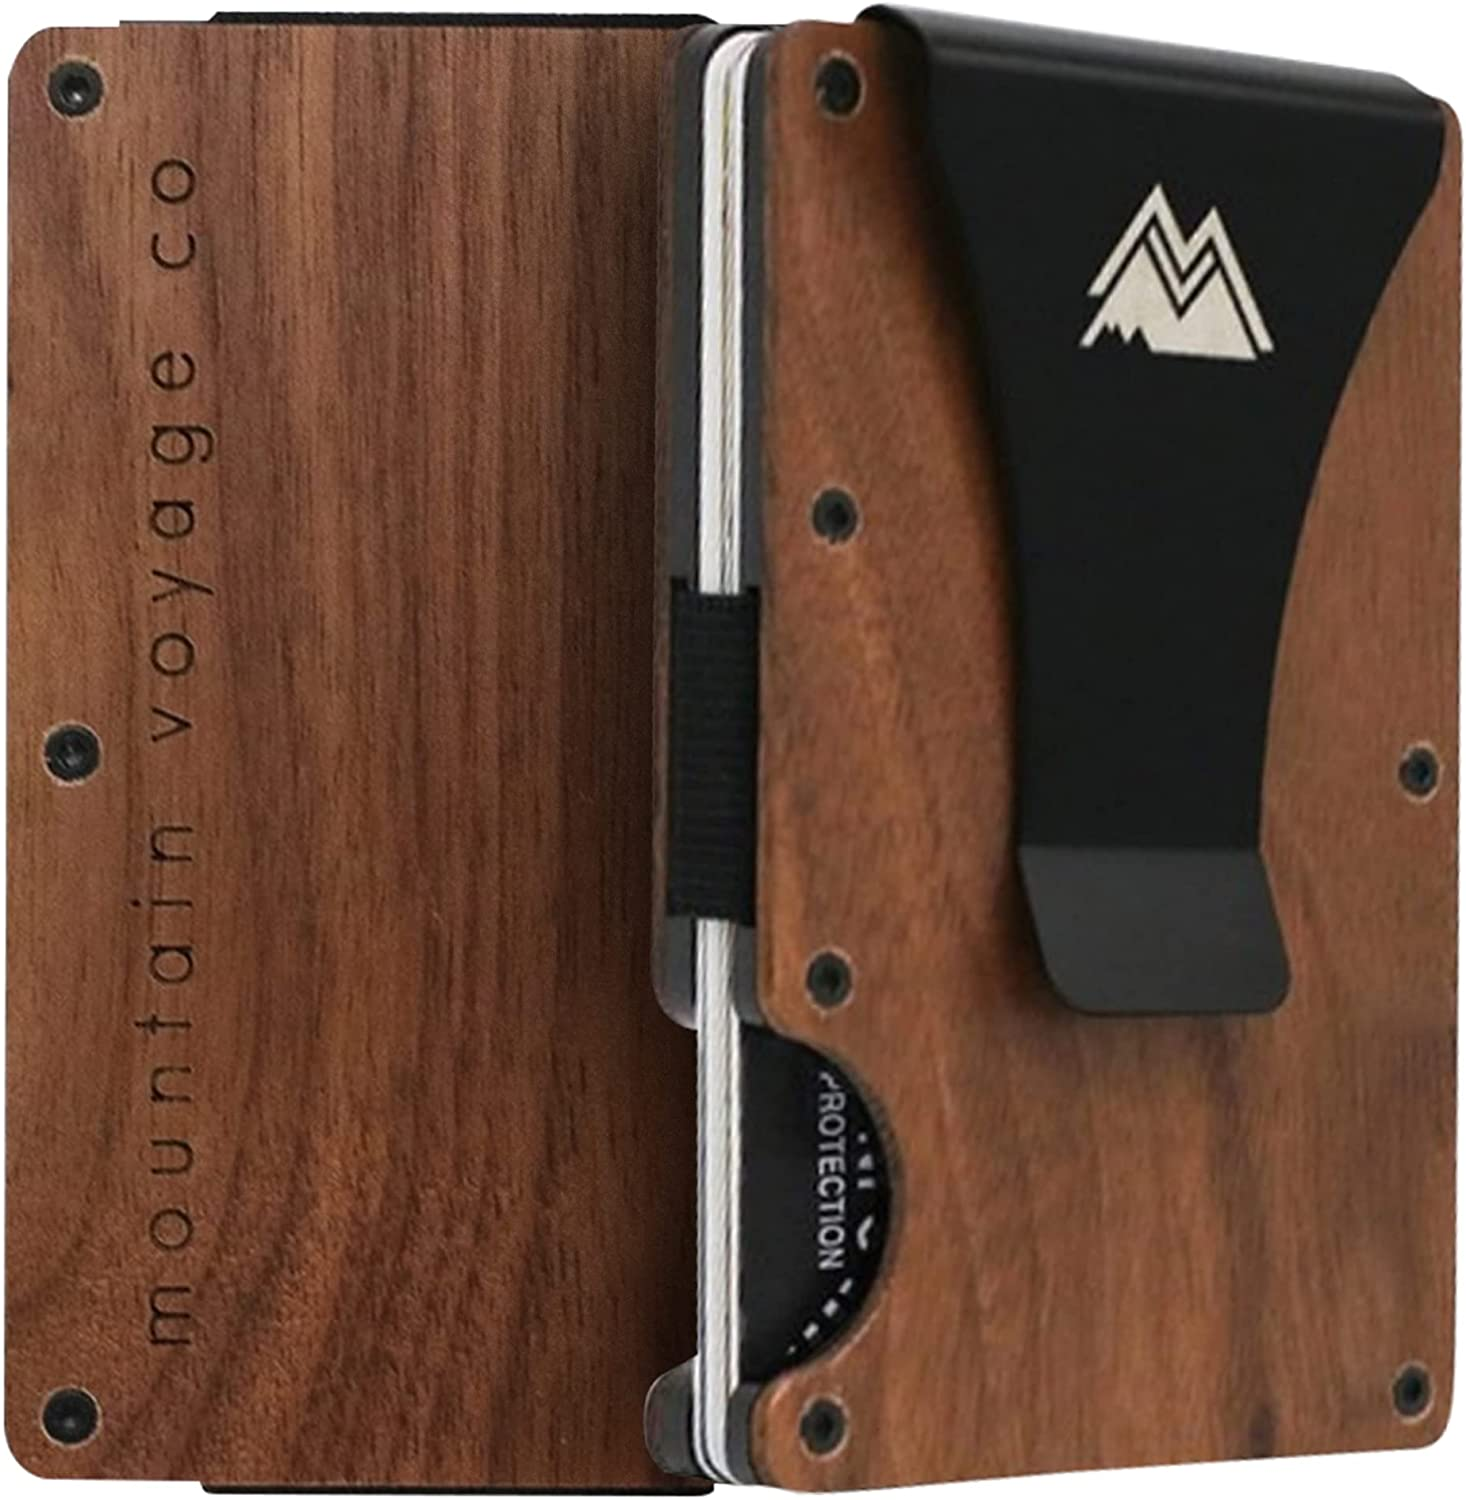 Mountain Voyage Premium Minimalist Mens Wallet – Secure Credit Card Holder And Removable Money Clip – Natural Block Minimalist RFID Wallets For Men - Eco-Sustainable Wood Slim Wallet For Men – Premium Gift For Men's Wallet